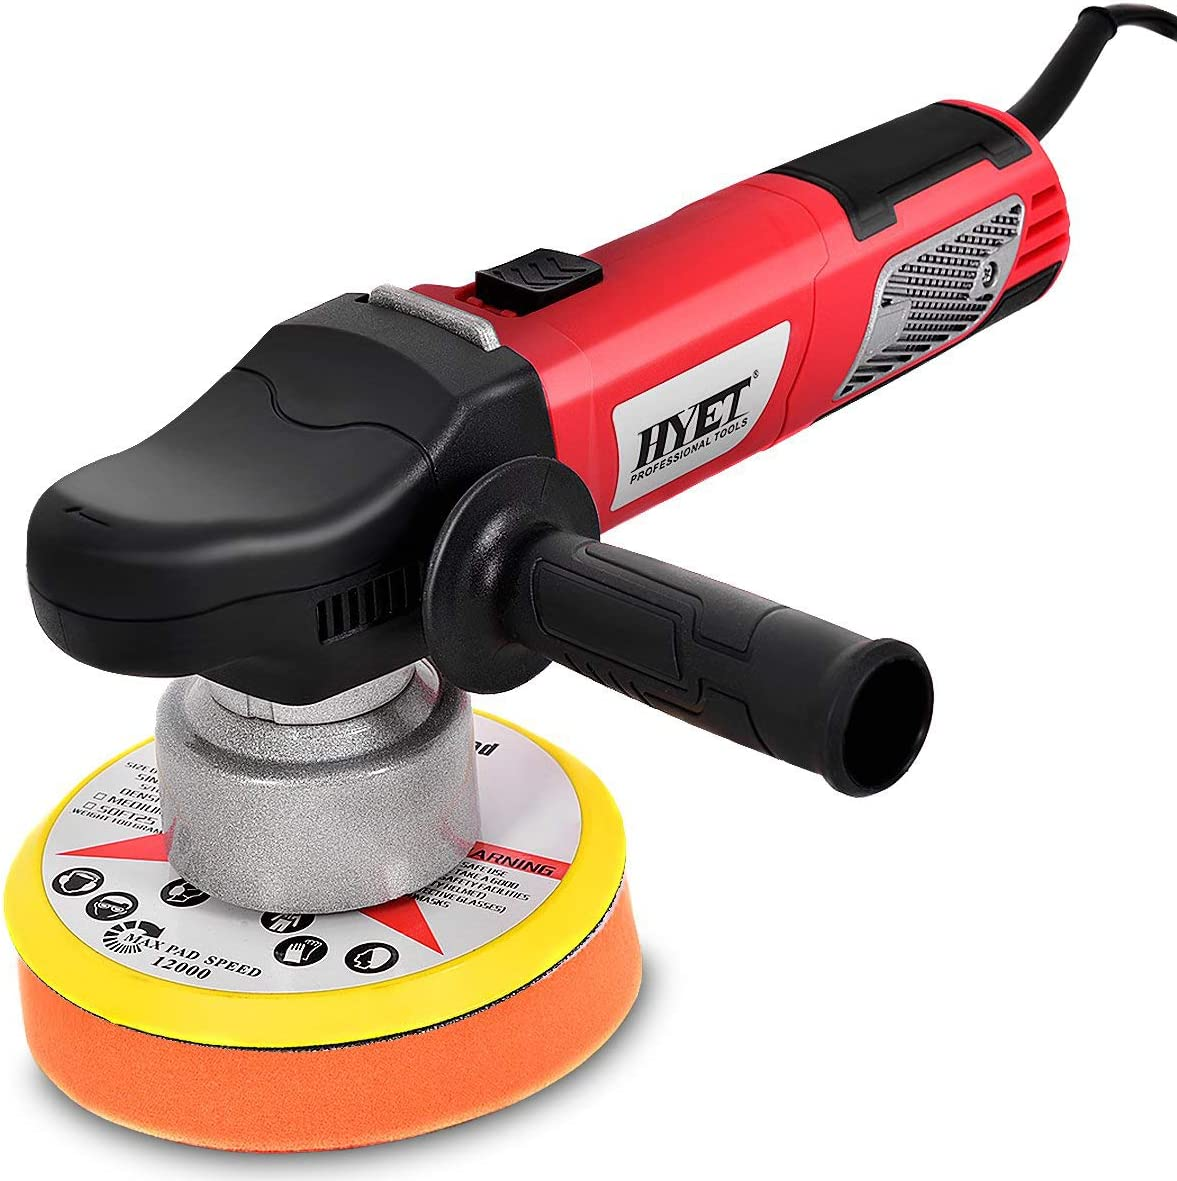 Goplus Random Orbital Polisher Electrical Sander Variable Speed Dual-Action Grinder Buffer Kit For Auto Detail 6 inch